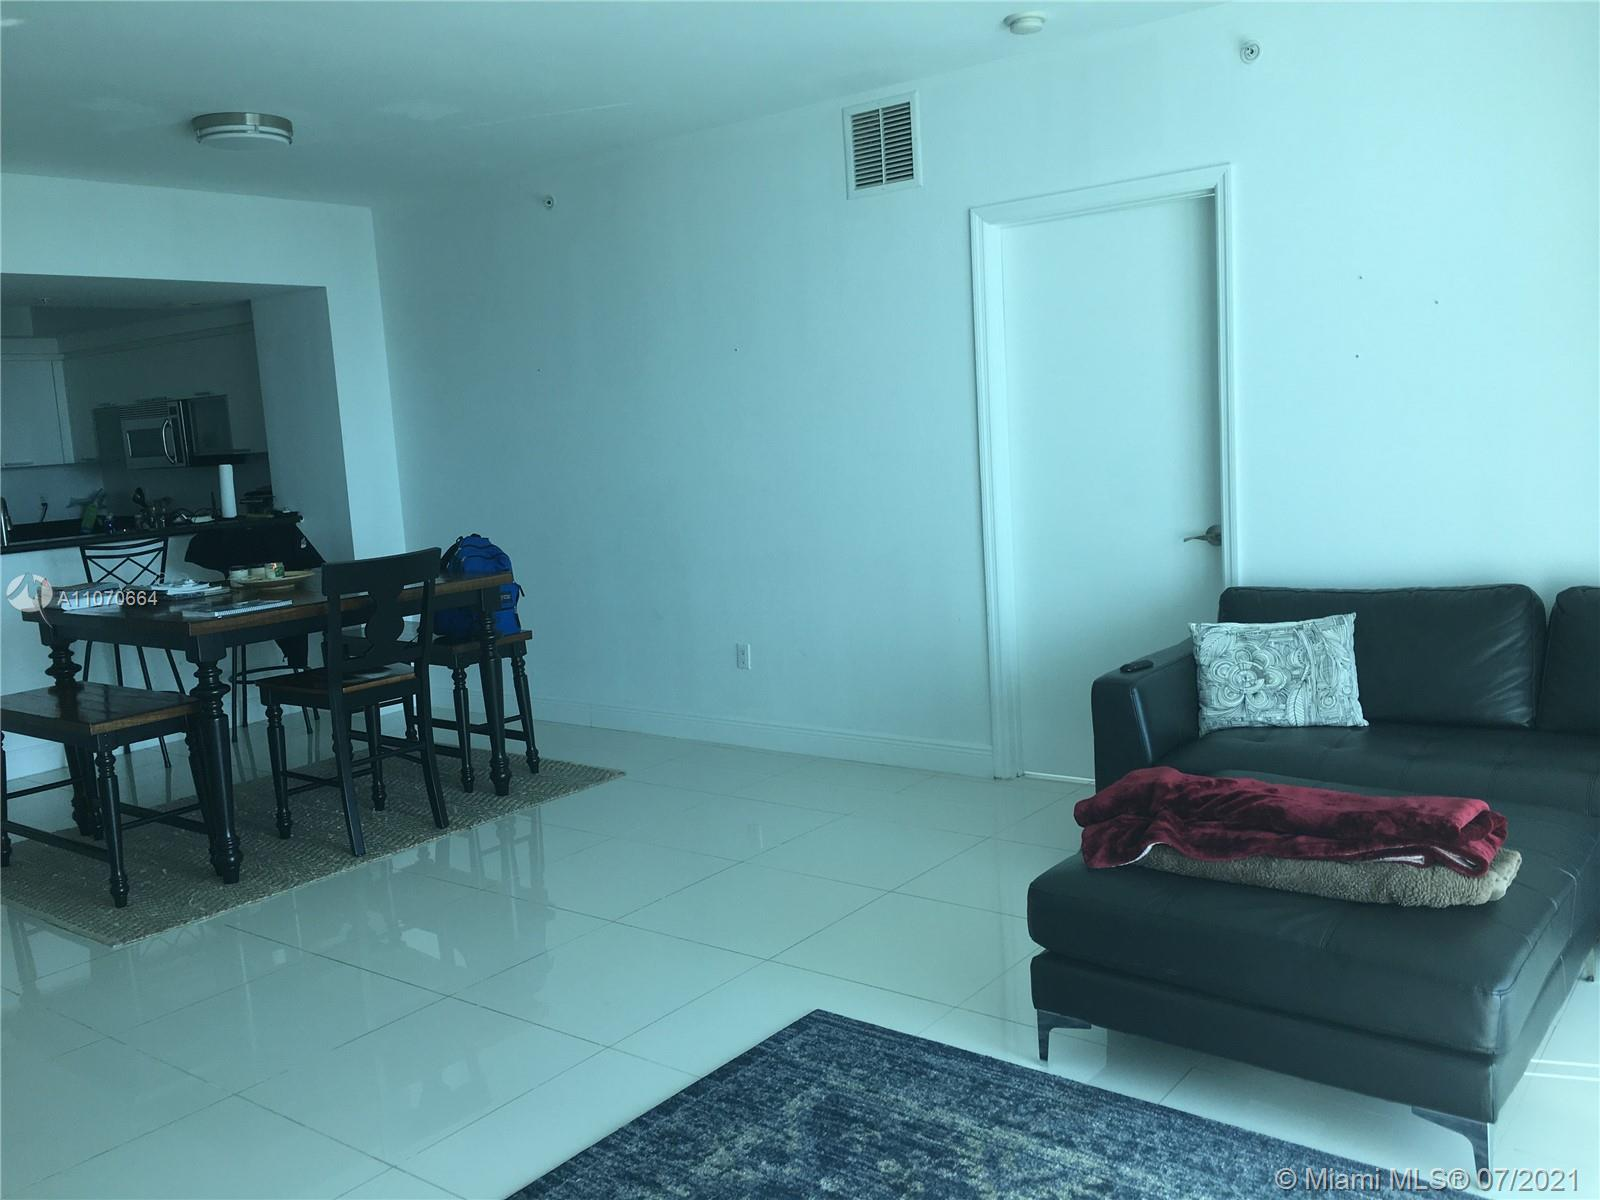 One Fifty One At Biscayne #1502 - 03 - photo